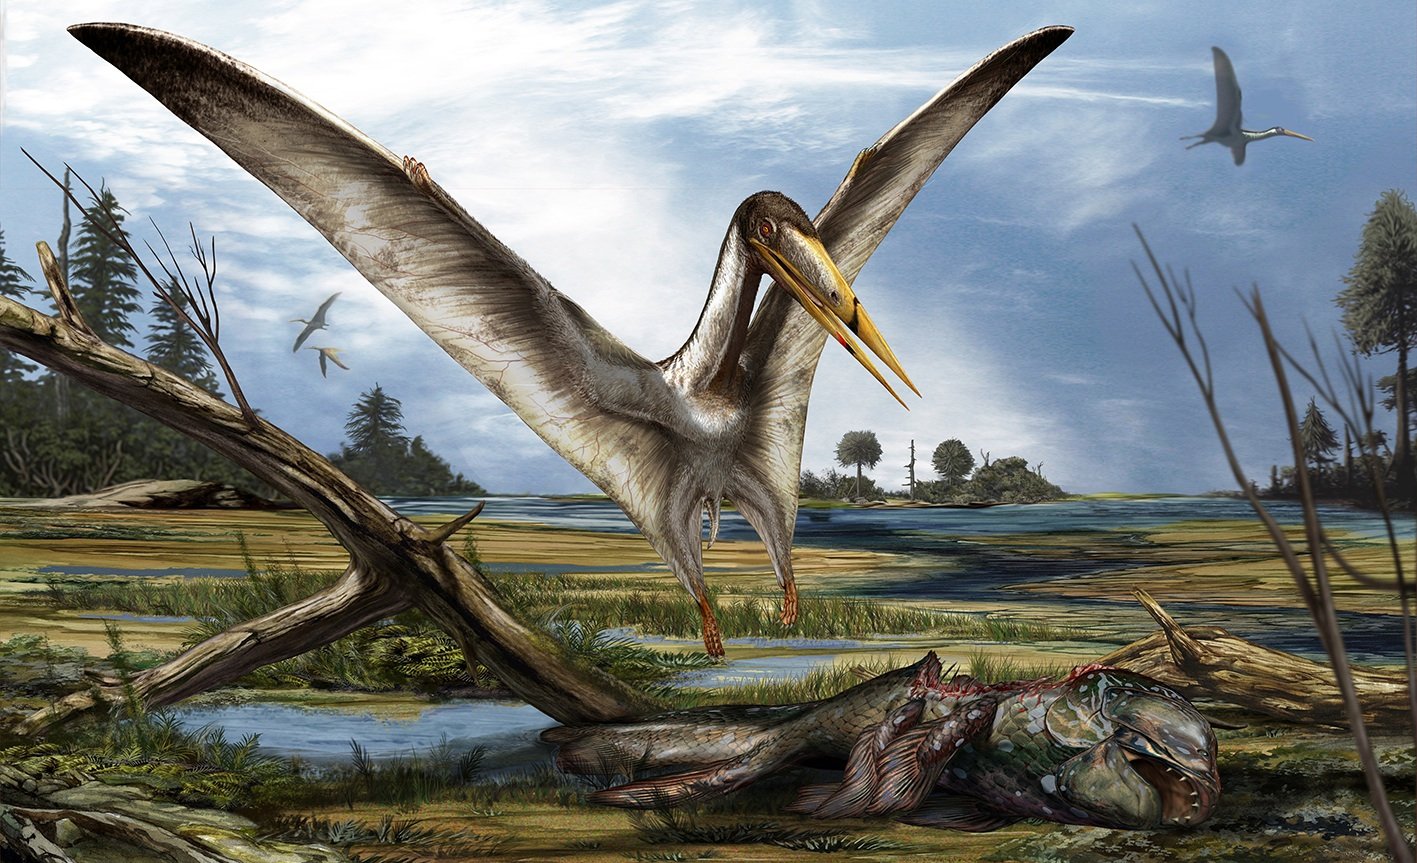 Alanqa saharica, one of Ibrahim's discoveries, is a flying reptile with a 20-foot wingspan. Alanqa is the Arabic/Persian word for phoenix. Image: TK